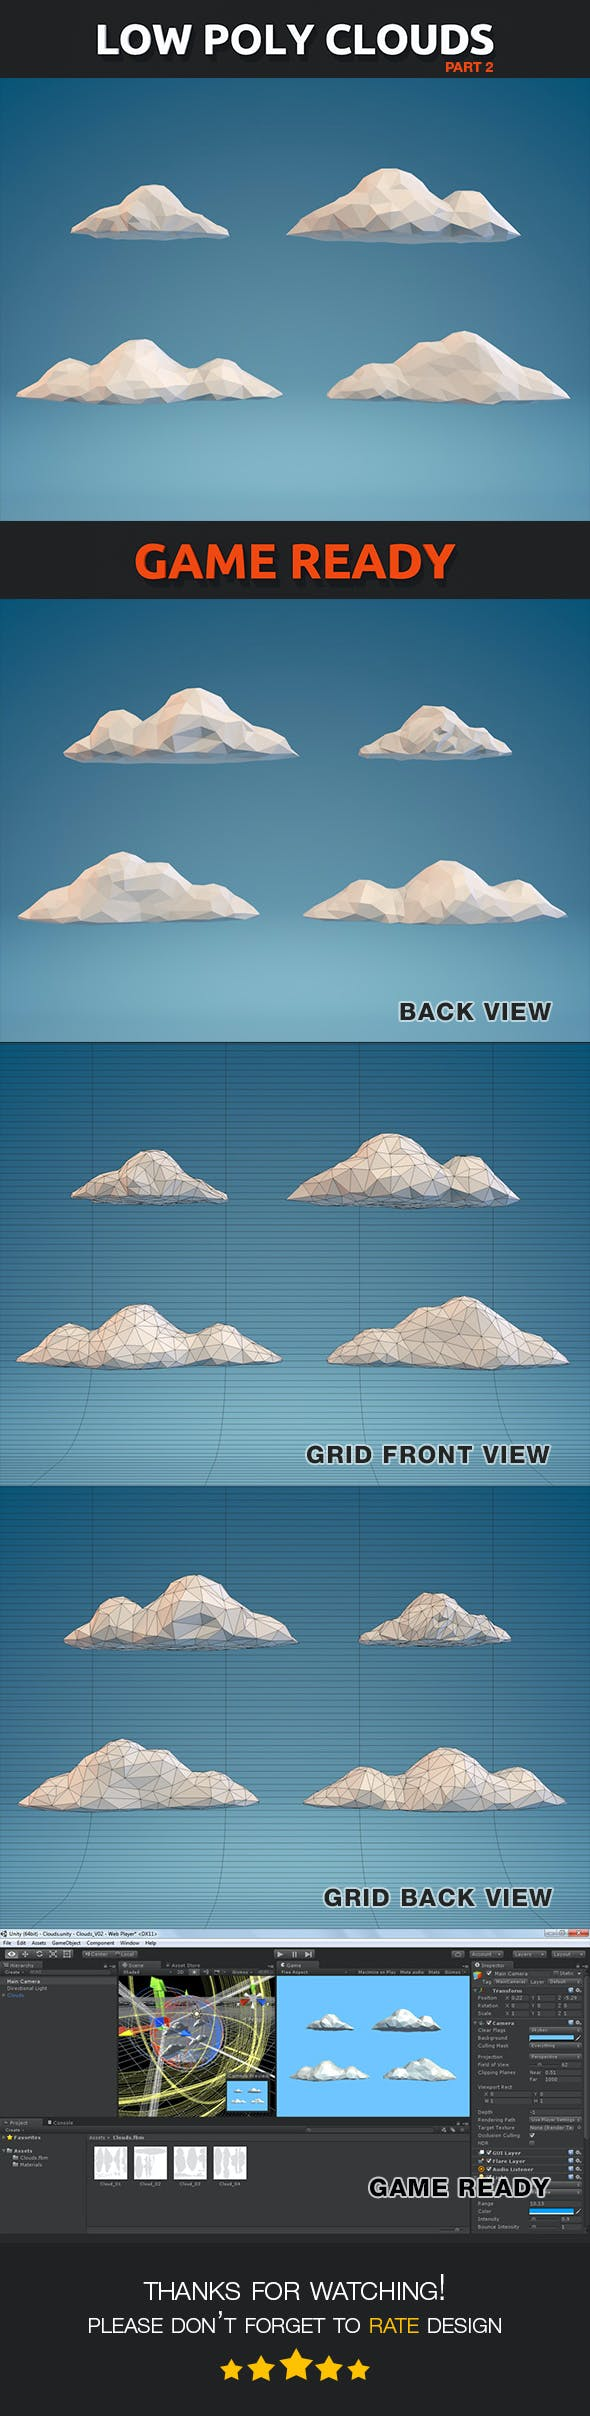 Low Poly Clouds Part 02 - 3DOcean Item for Sale